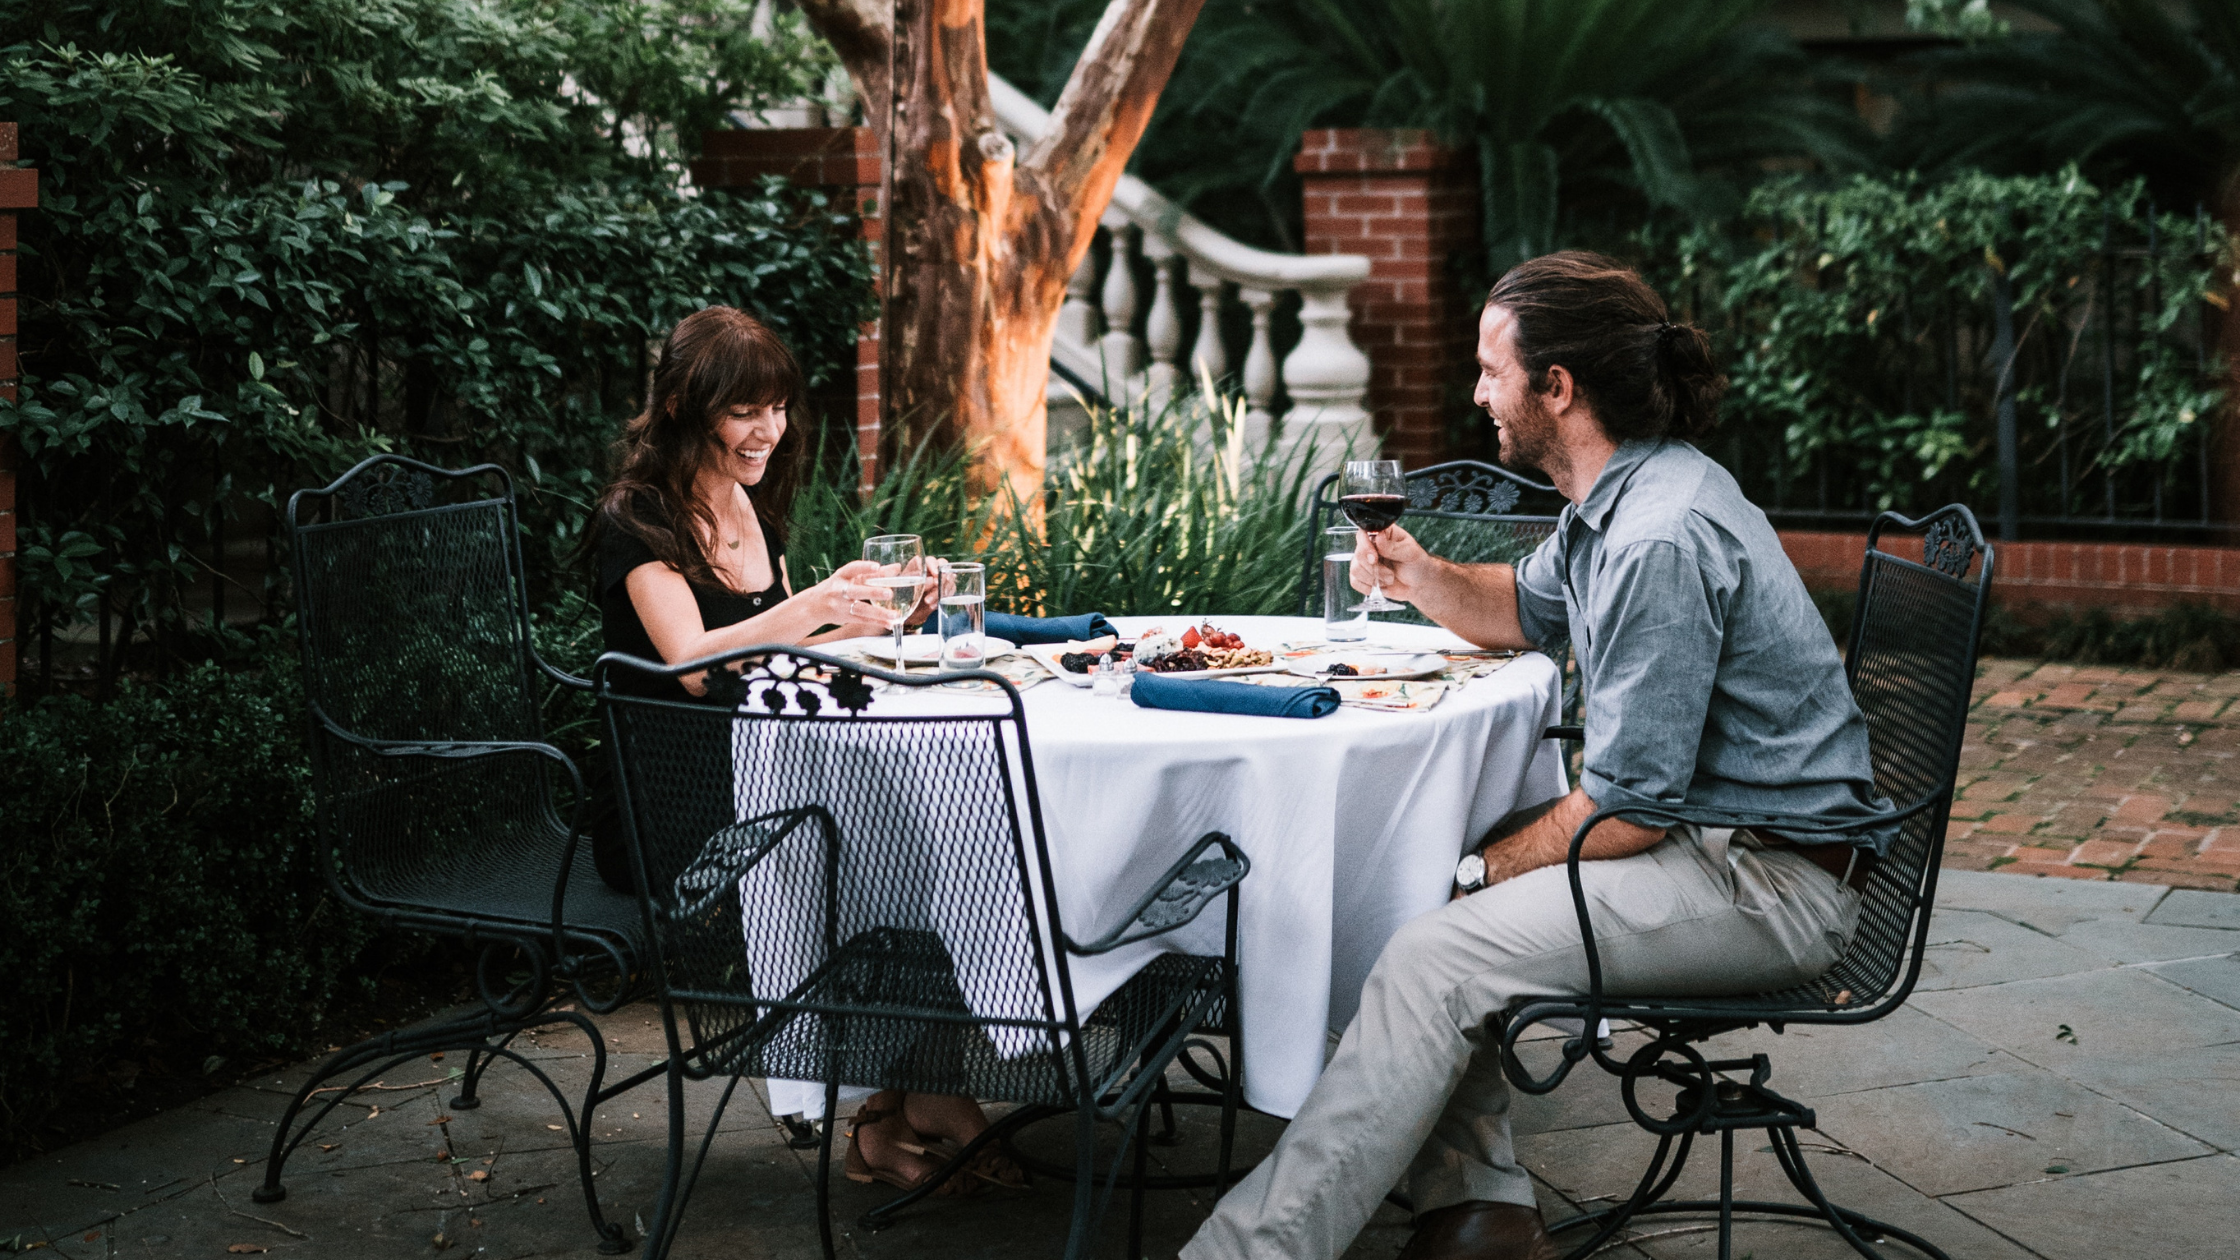 Romantic Dinner for Two - featured image